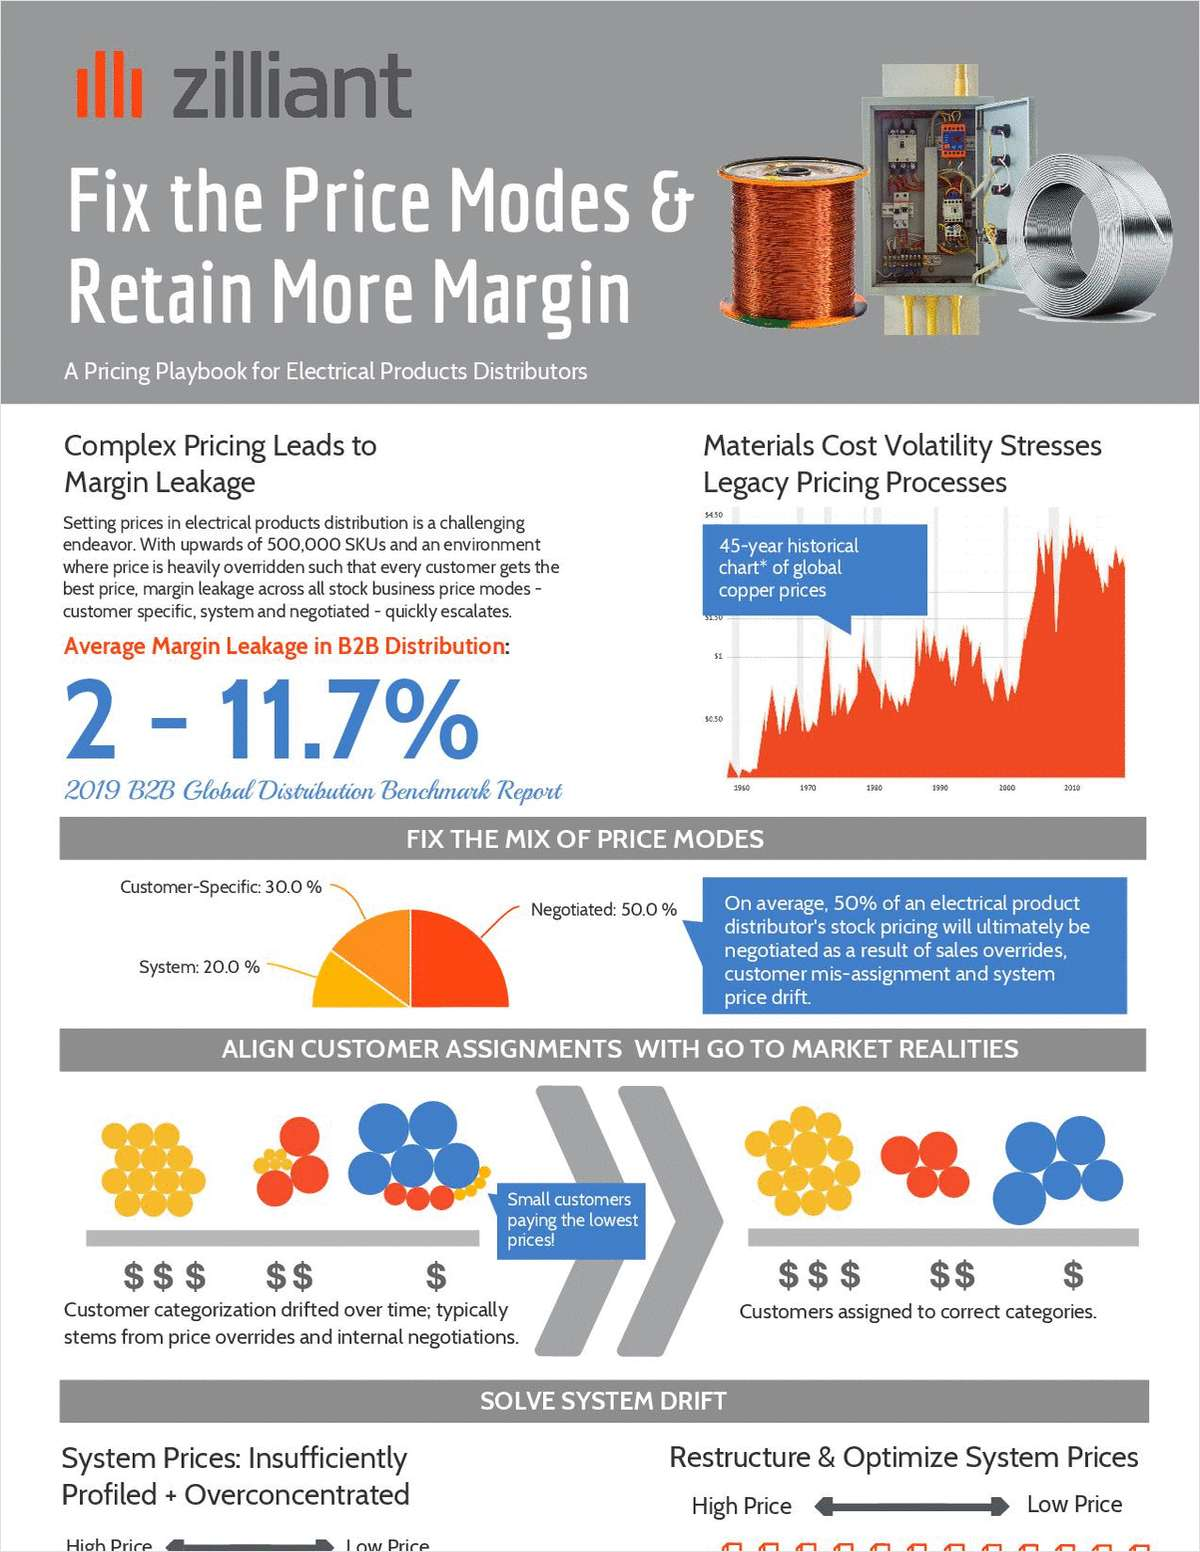 Fix the Price Modes to Retain More Margin in Electrical Products Distribution